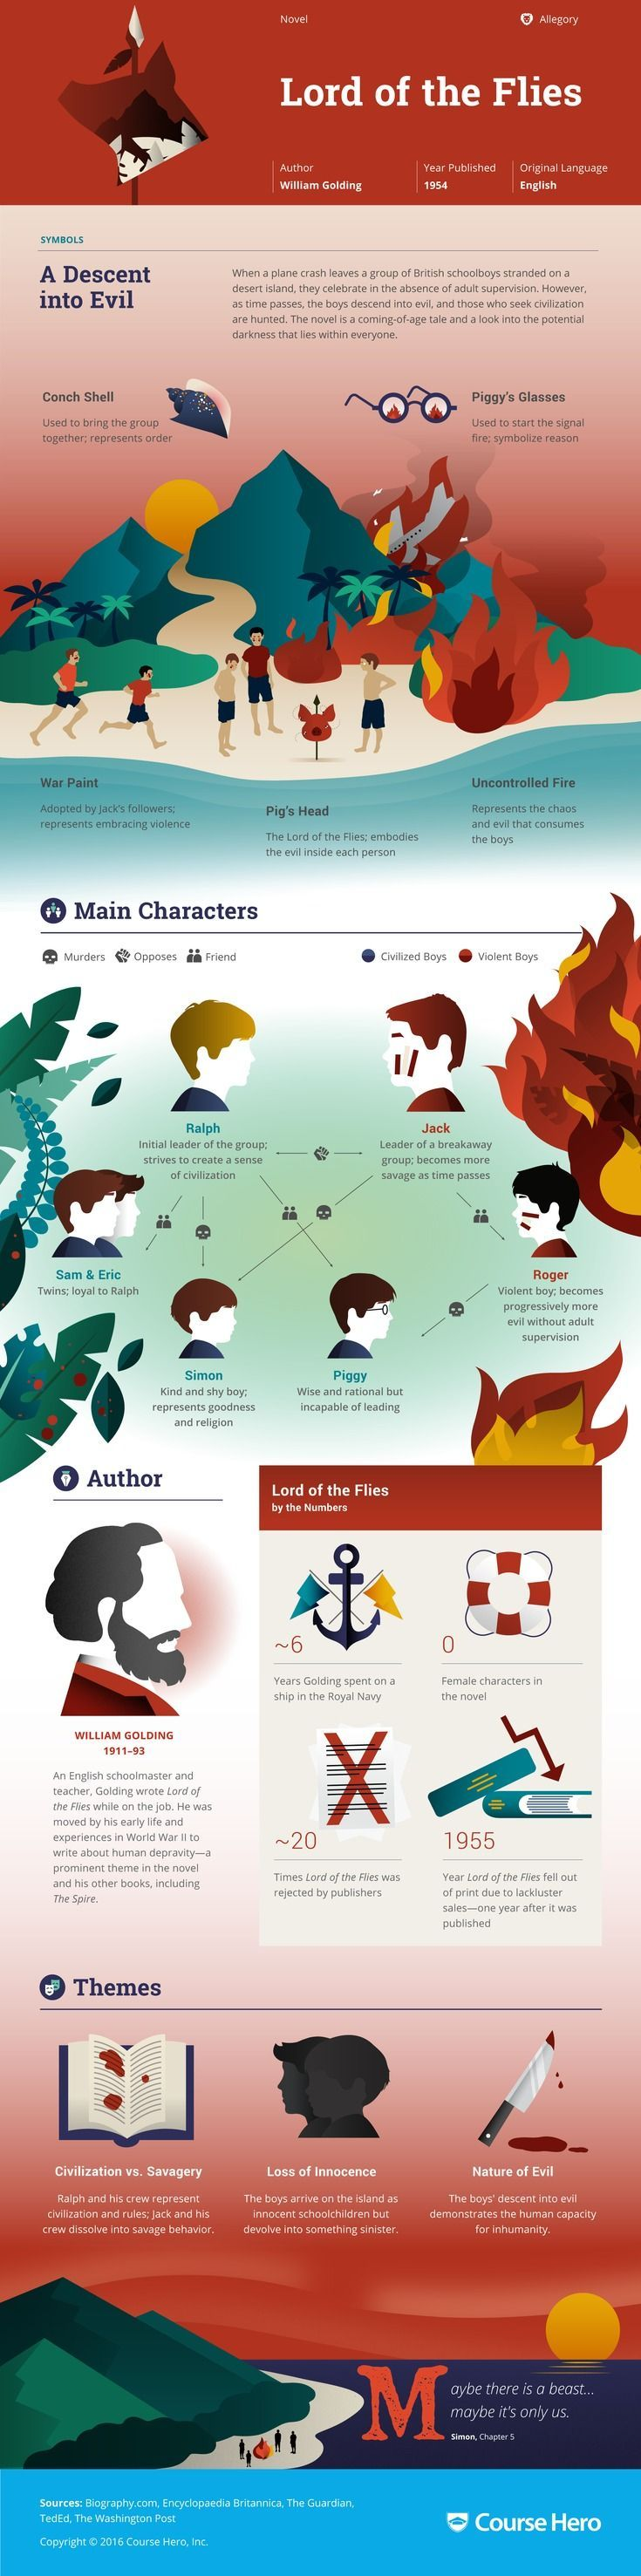 sparknotes of the kite runner sparknotes king lear sparknotes king  best ideas about night elie wiesel summary music this coursehero infographic on lord of the flies bbc radio bookclub khaled hosseini the kite runner